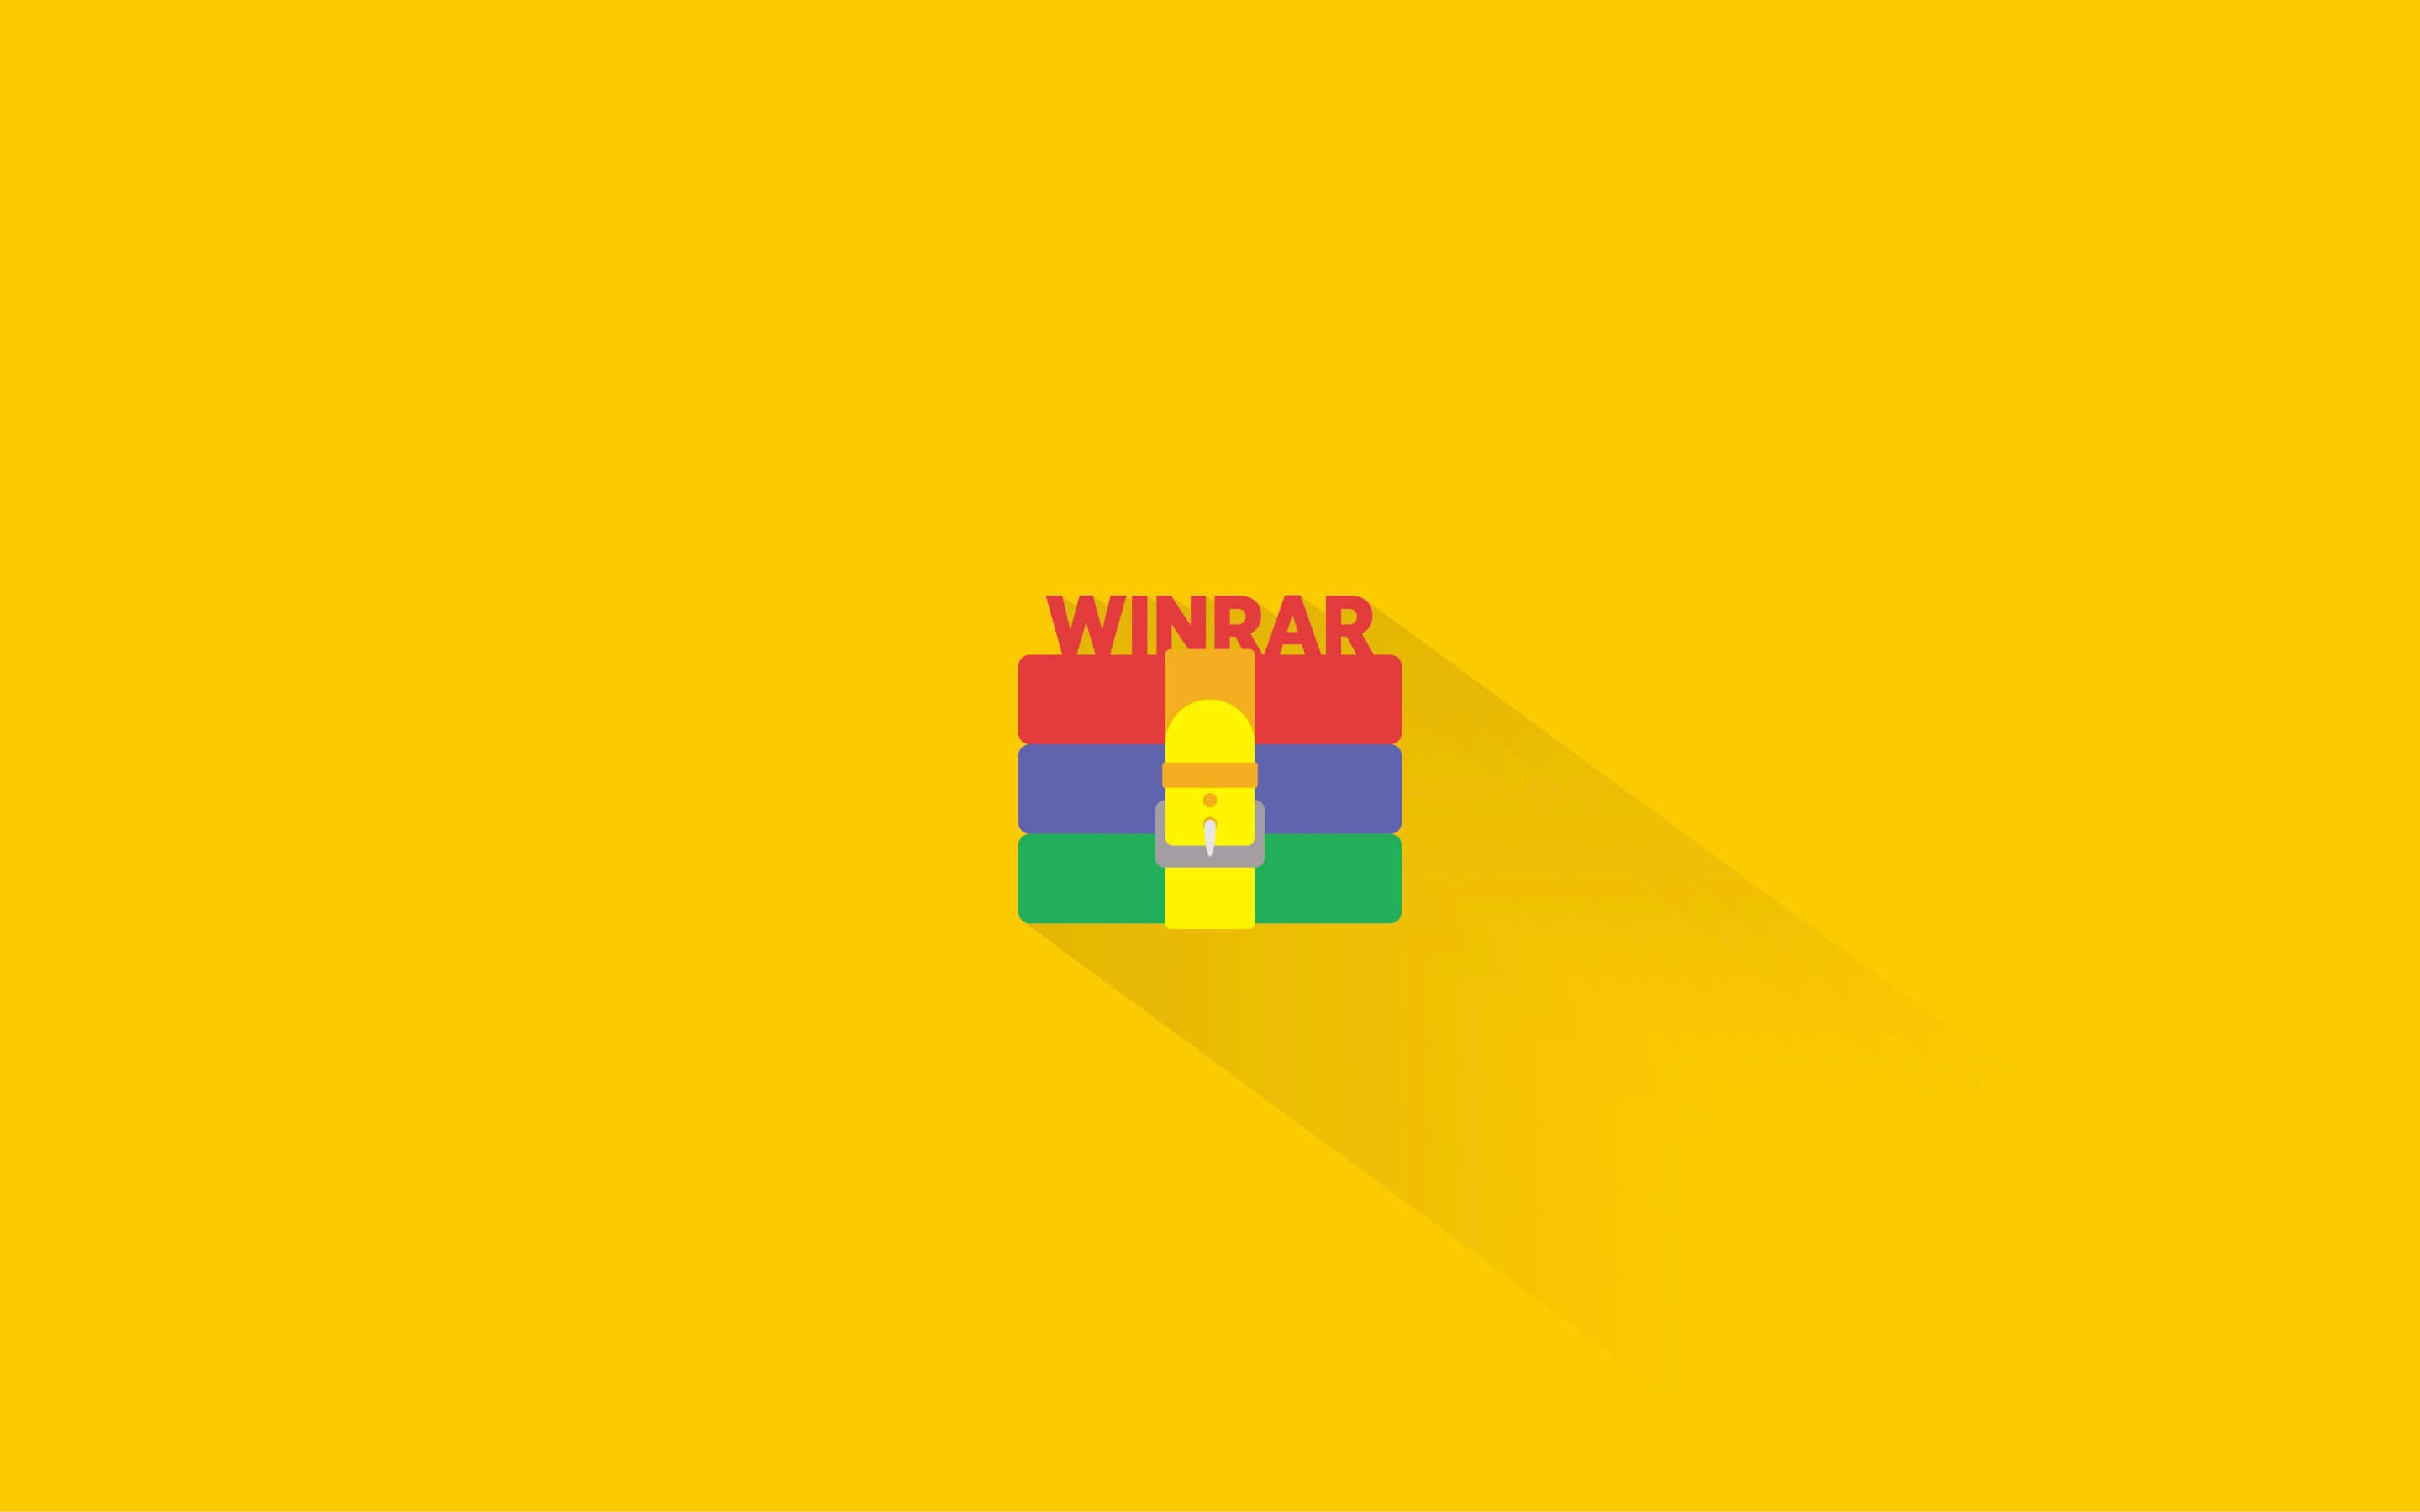 """100 unique exploits and counting"": Hackers begin exploiting WinRAR critical vulnerability"